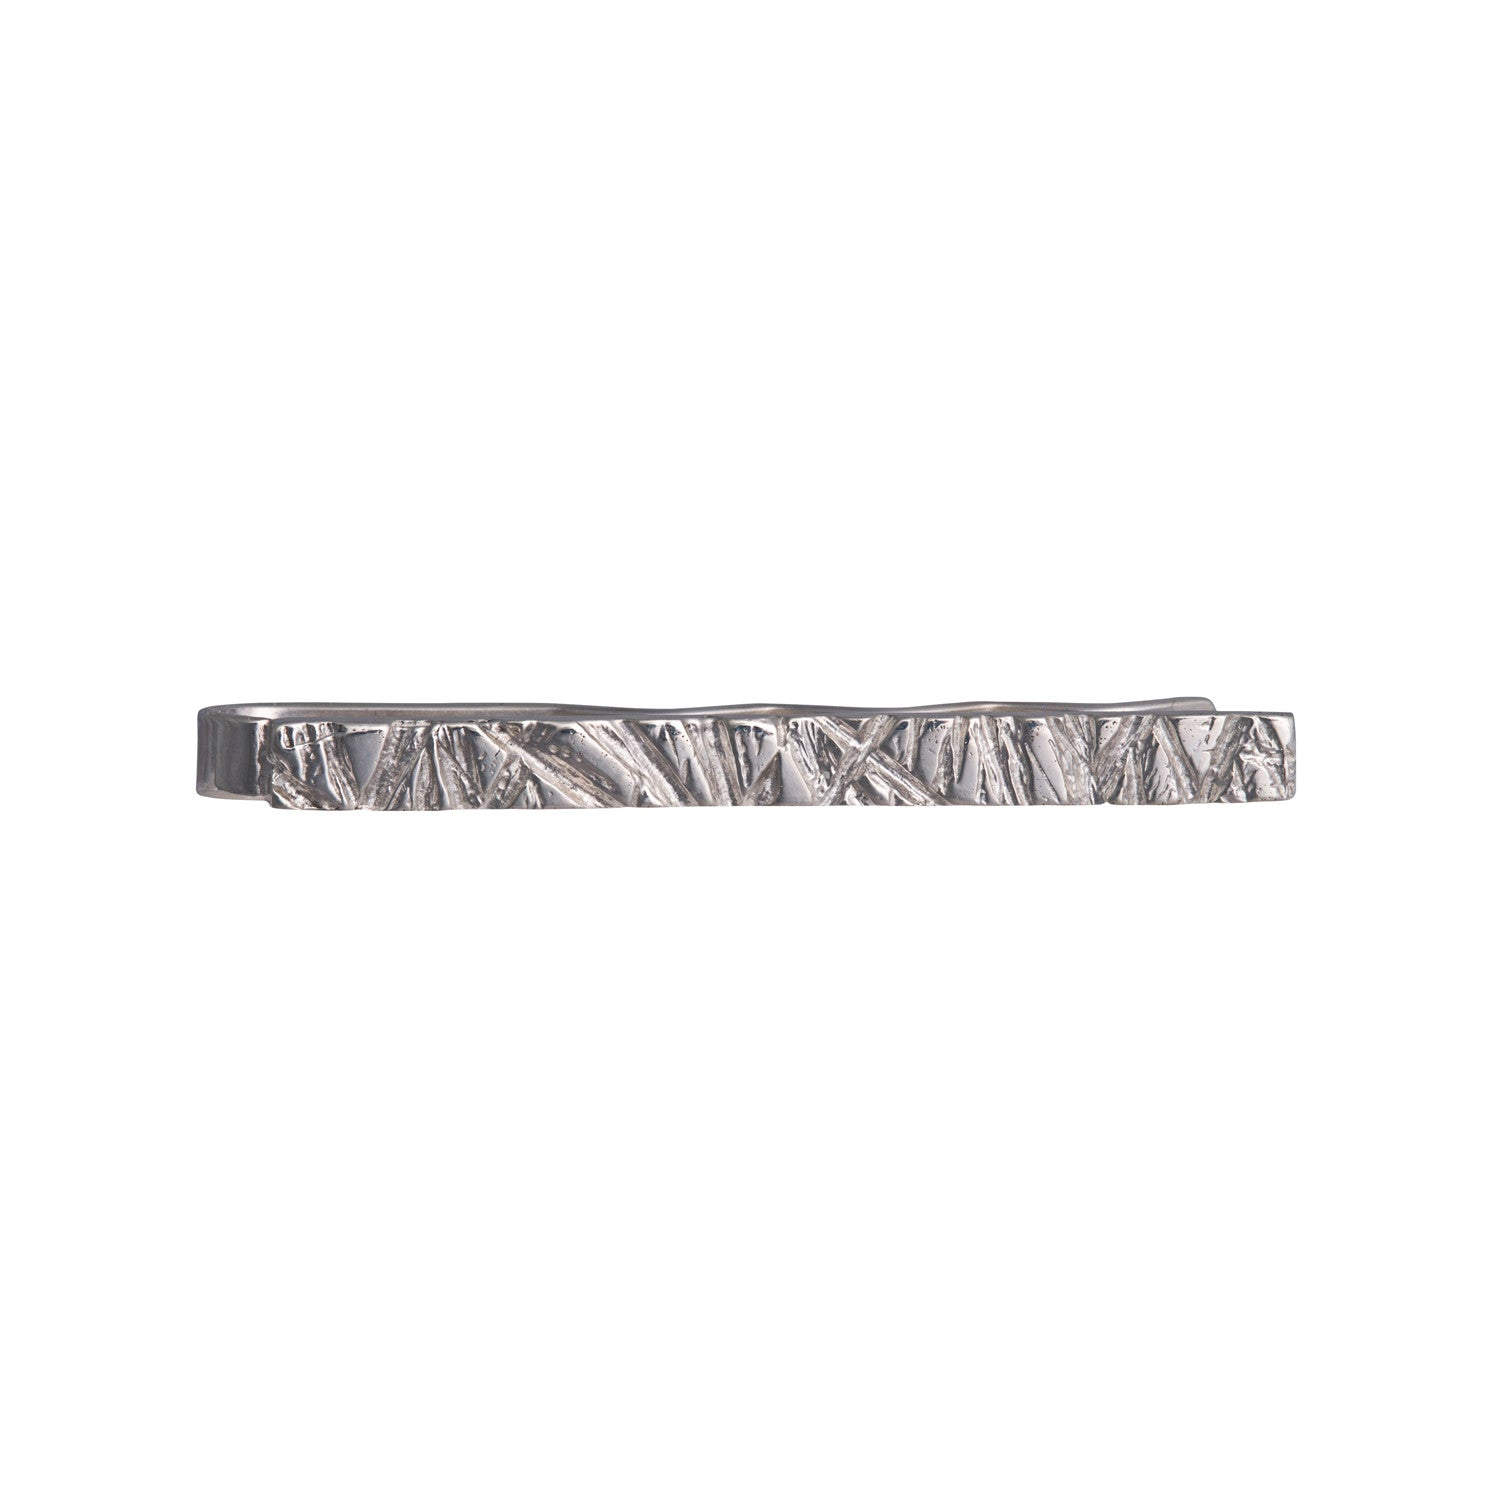 78a3092556b5 Rugged Tie Bar in sterling silver | Edge Only jewelry Ireland